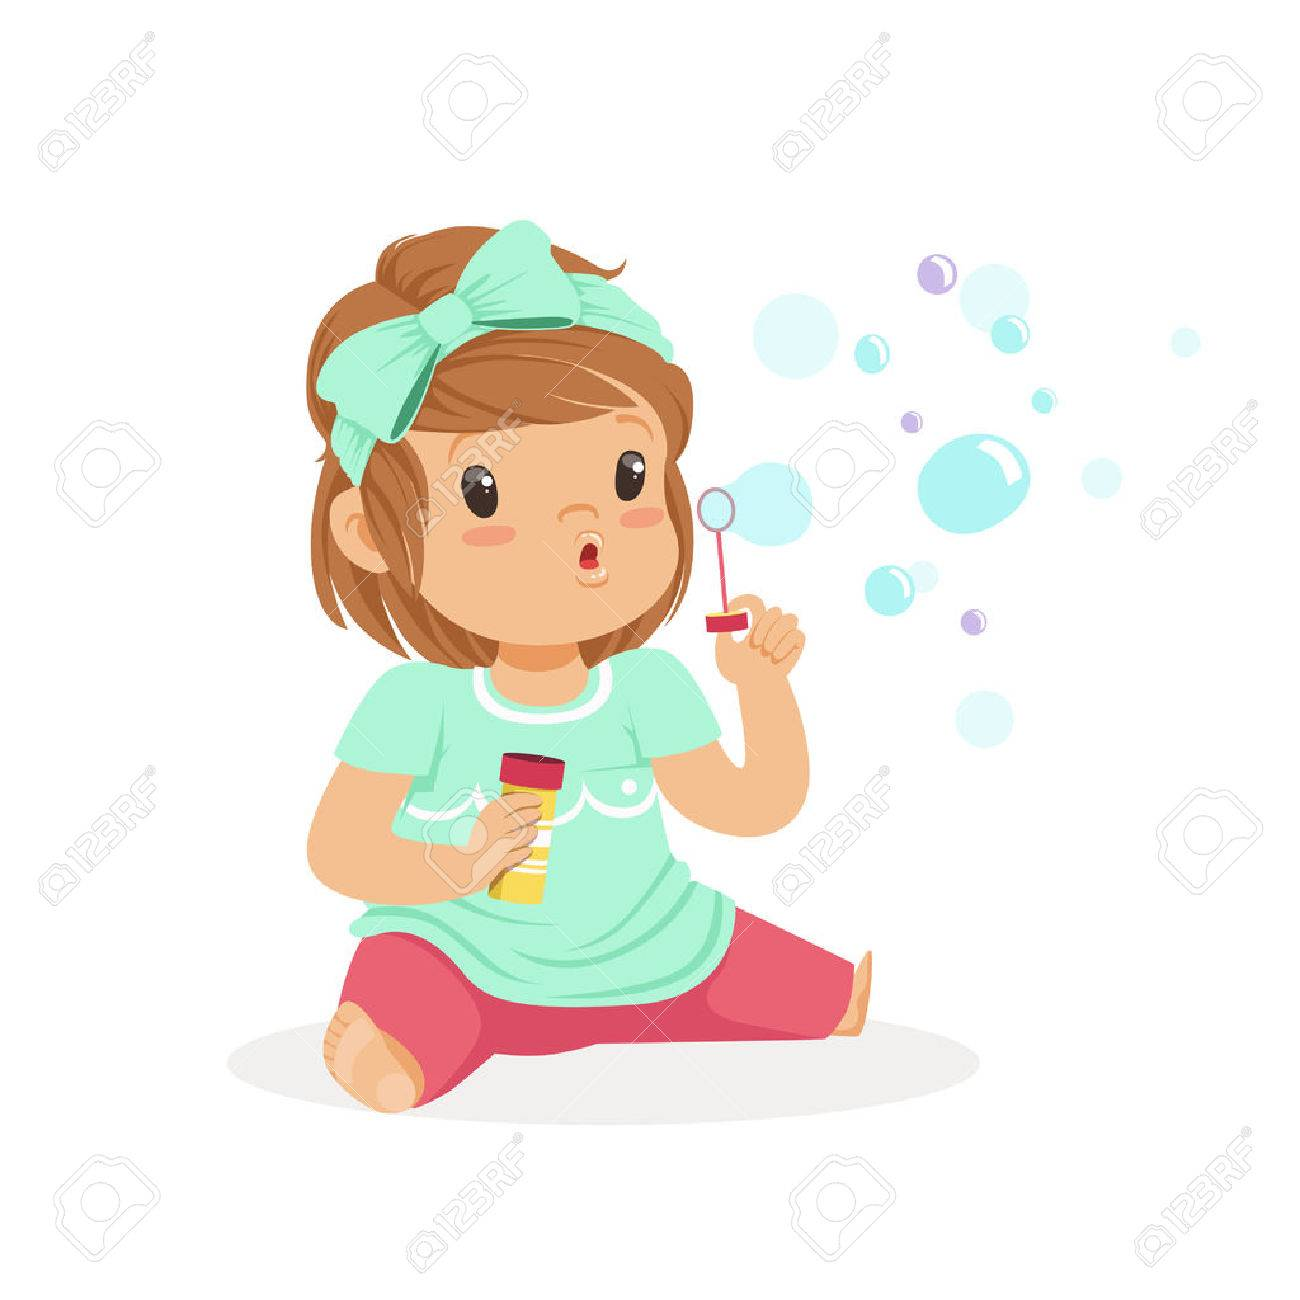 Blow bubbles clipart 6 » Clipart Station.